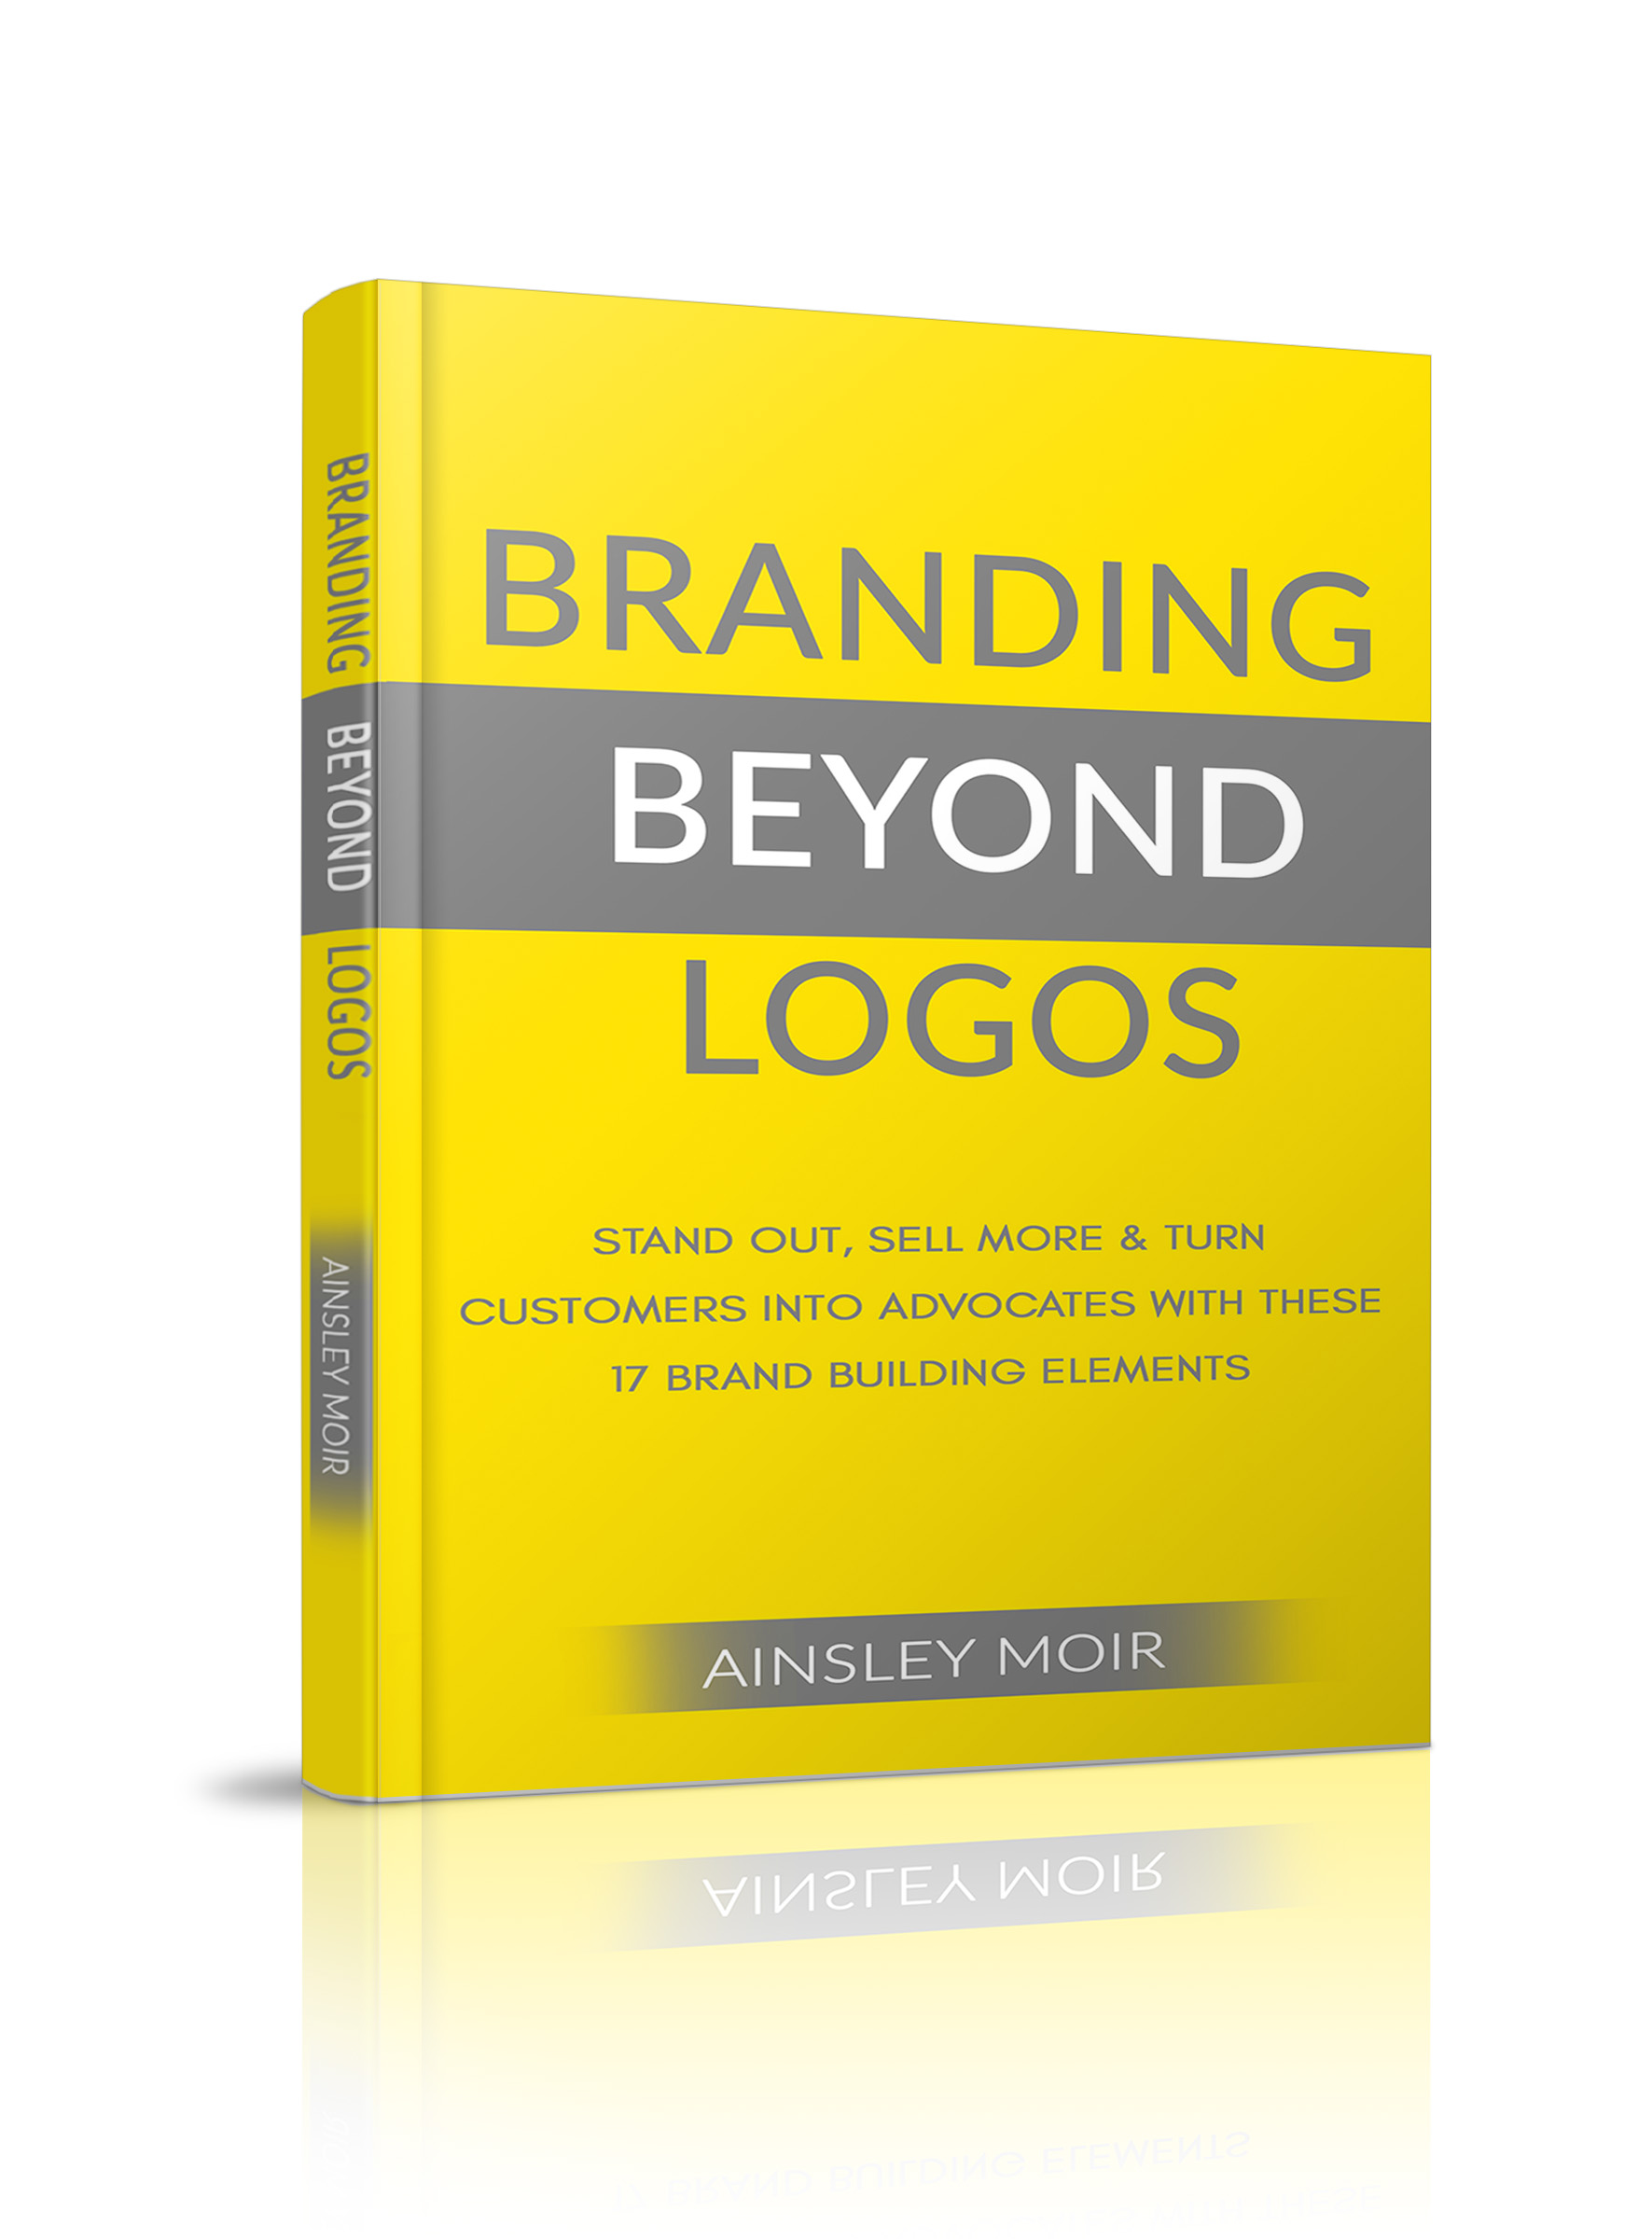 Author Ainsley Moir breaks down branding with Branding Beyond Logos